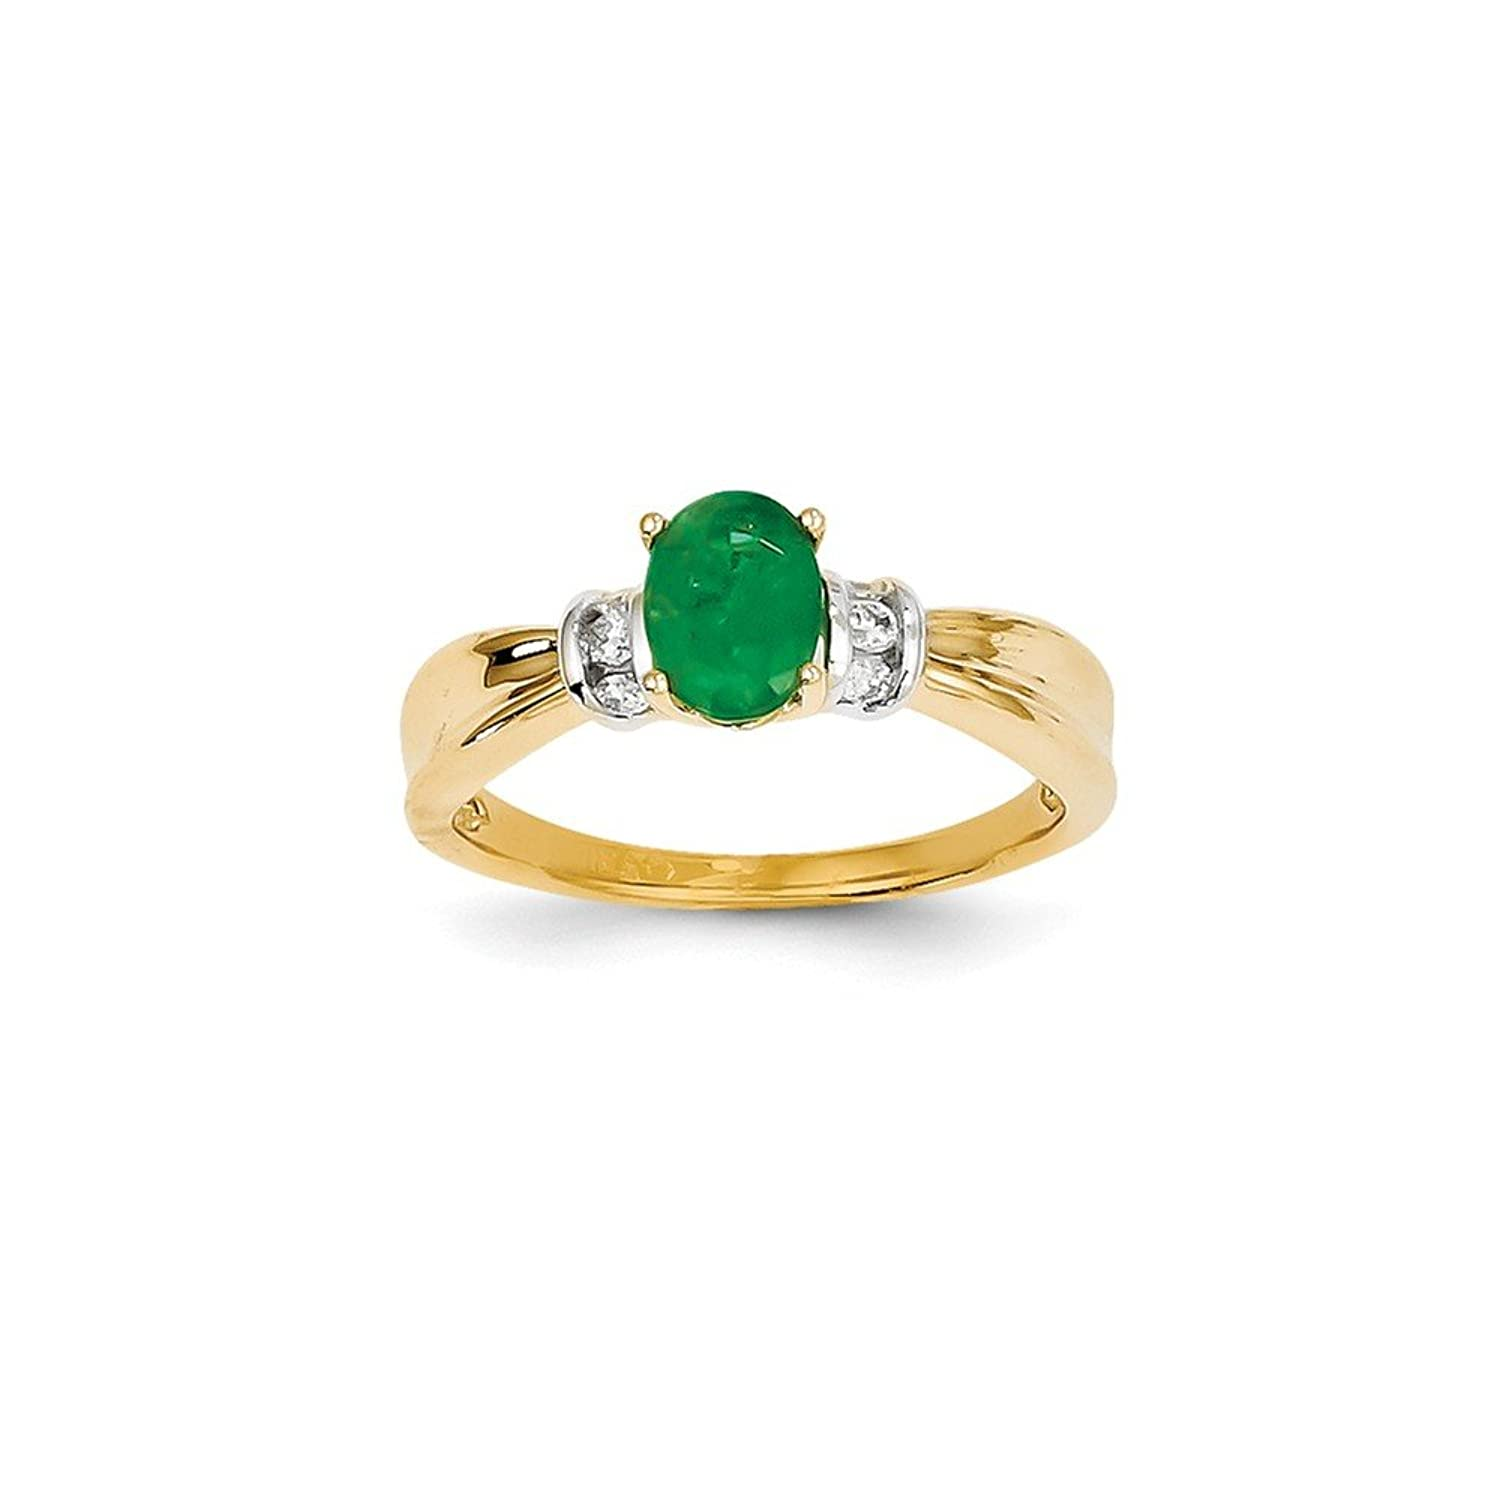 dp gold bridal emerald amazon band anniversary mm ca katarina heat jewelry size treated yellow